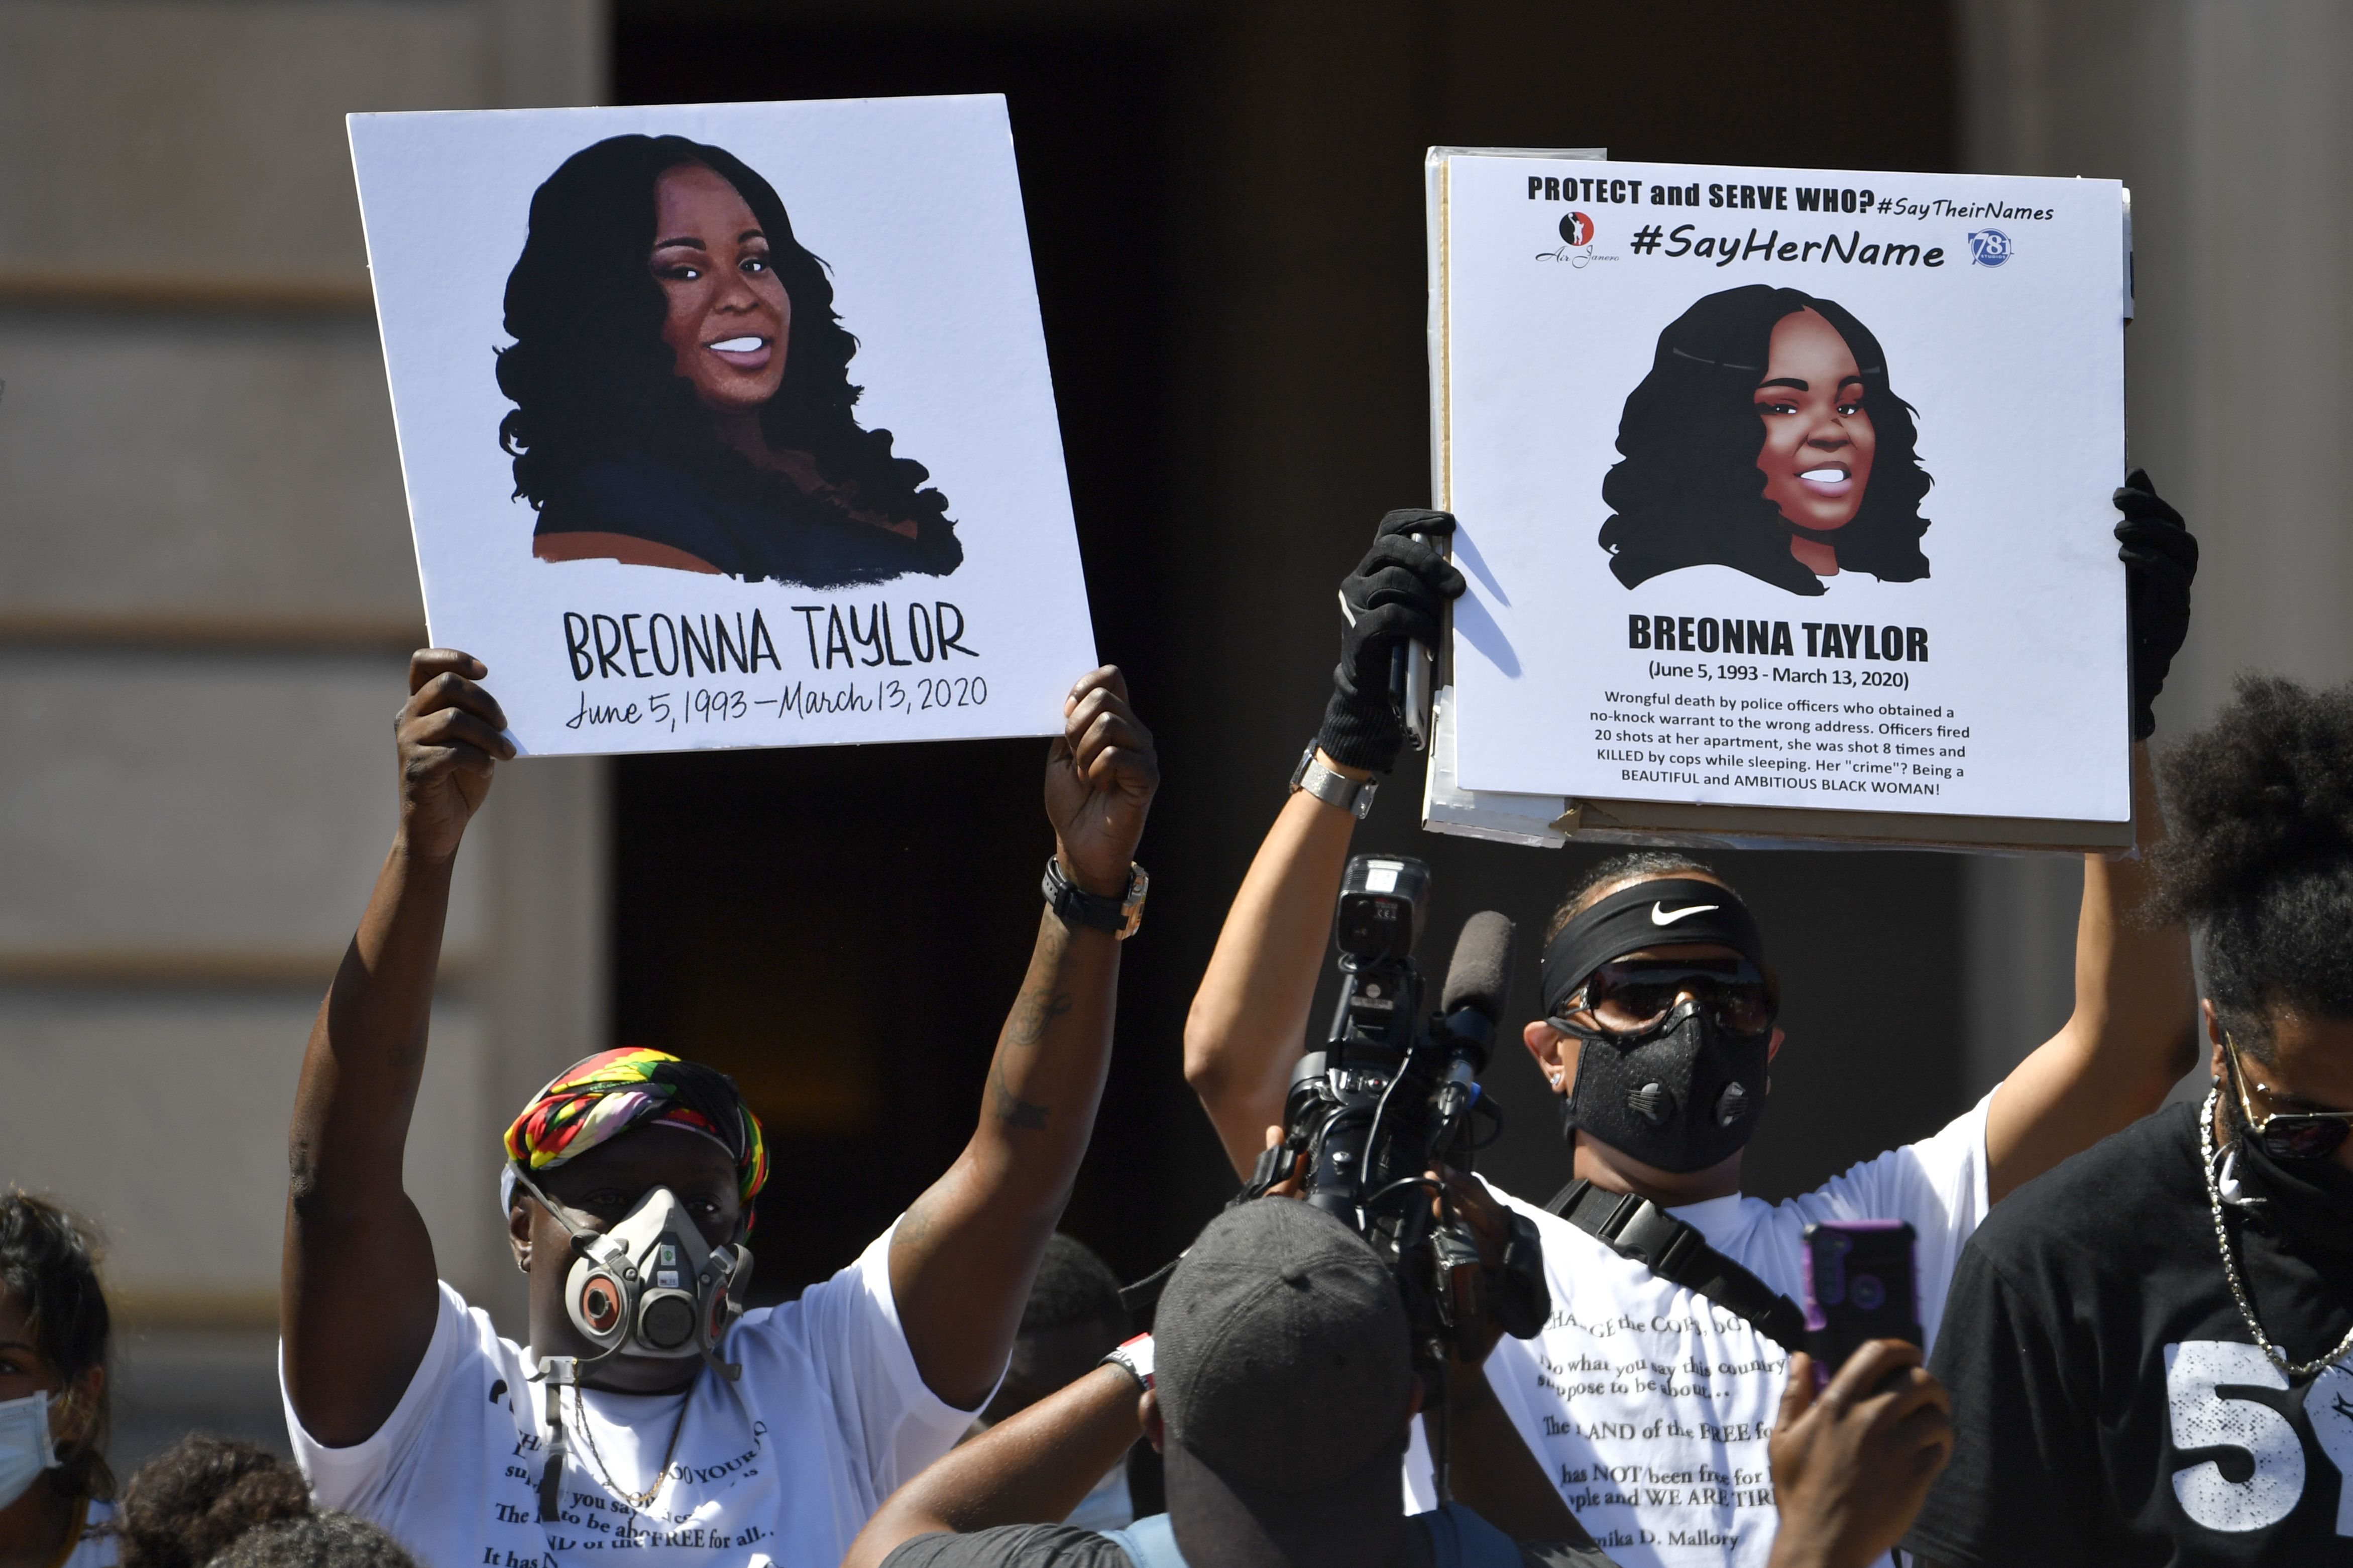 Breonna Taylor S Mom To Get Millions From Louisville Along With Promises Of Police Reform Pennlive Com